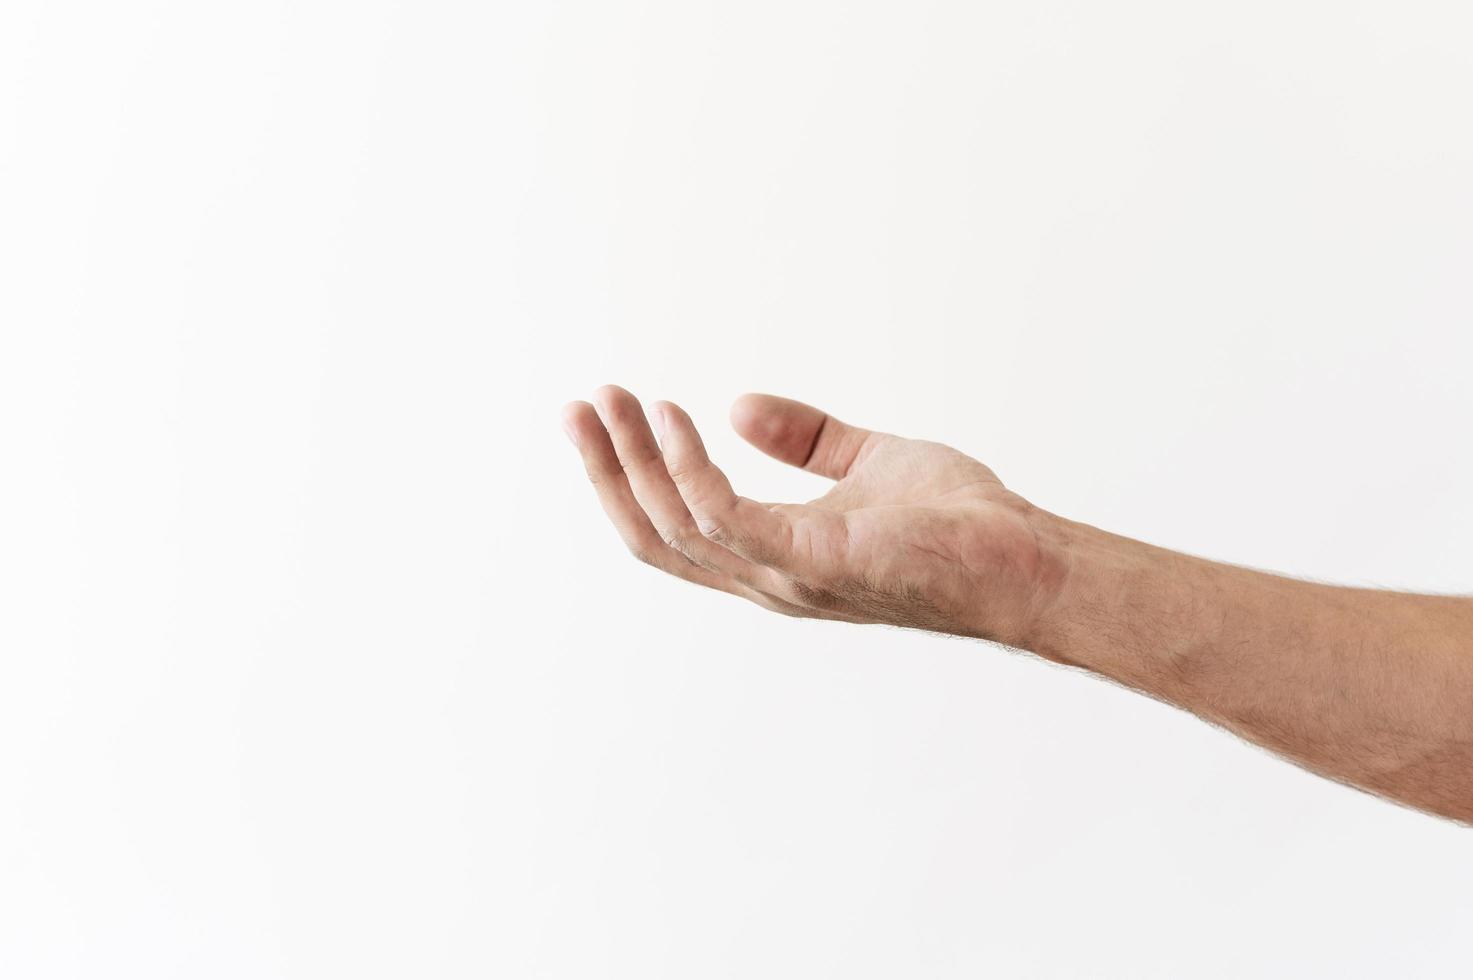 Side view of hand asking for food donations on white background photo